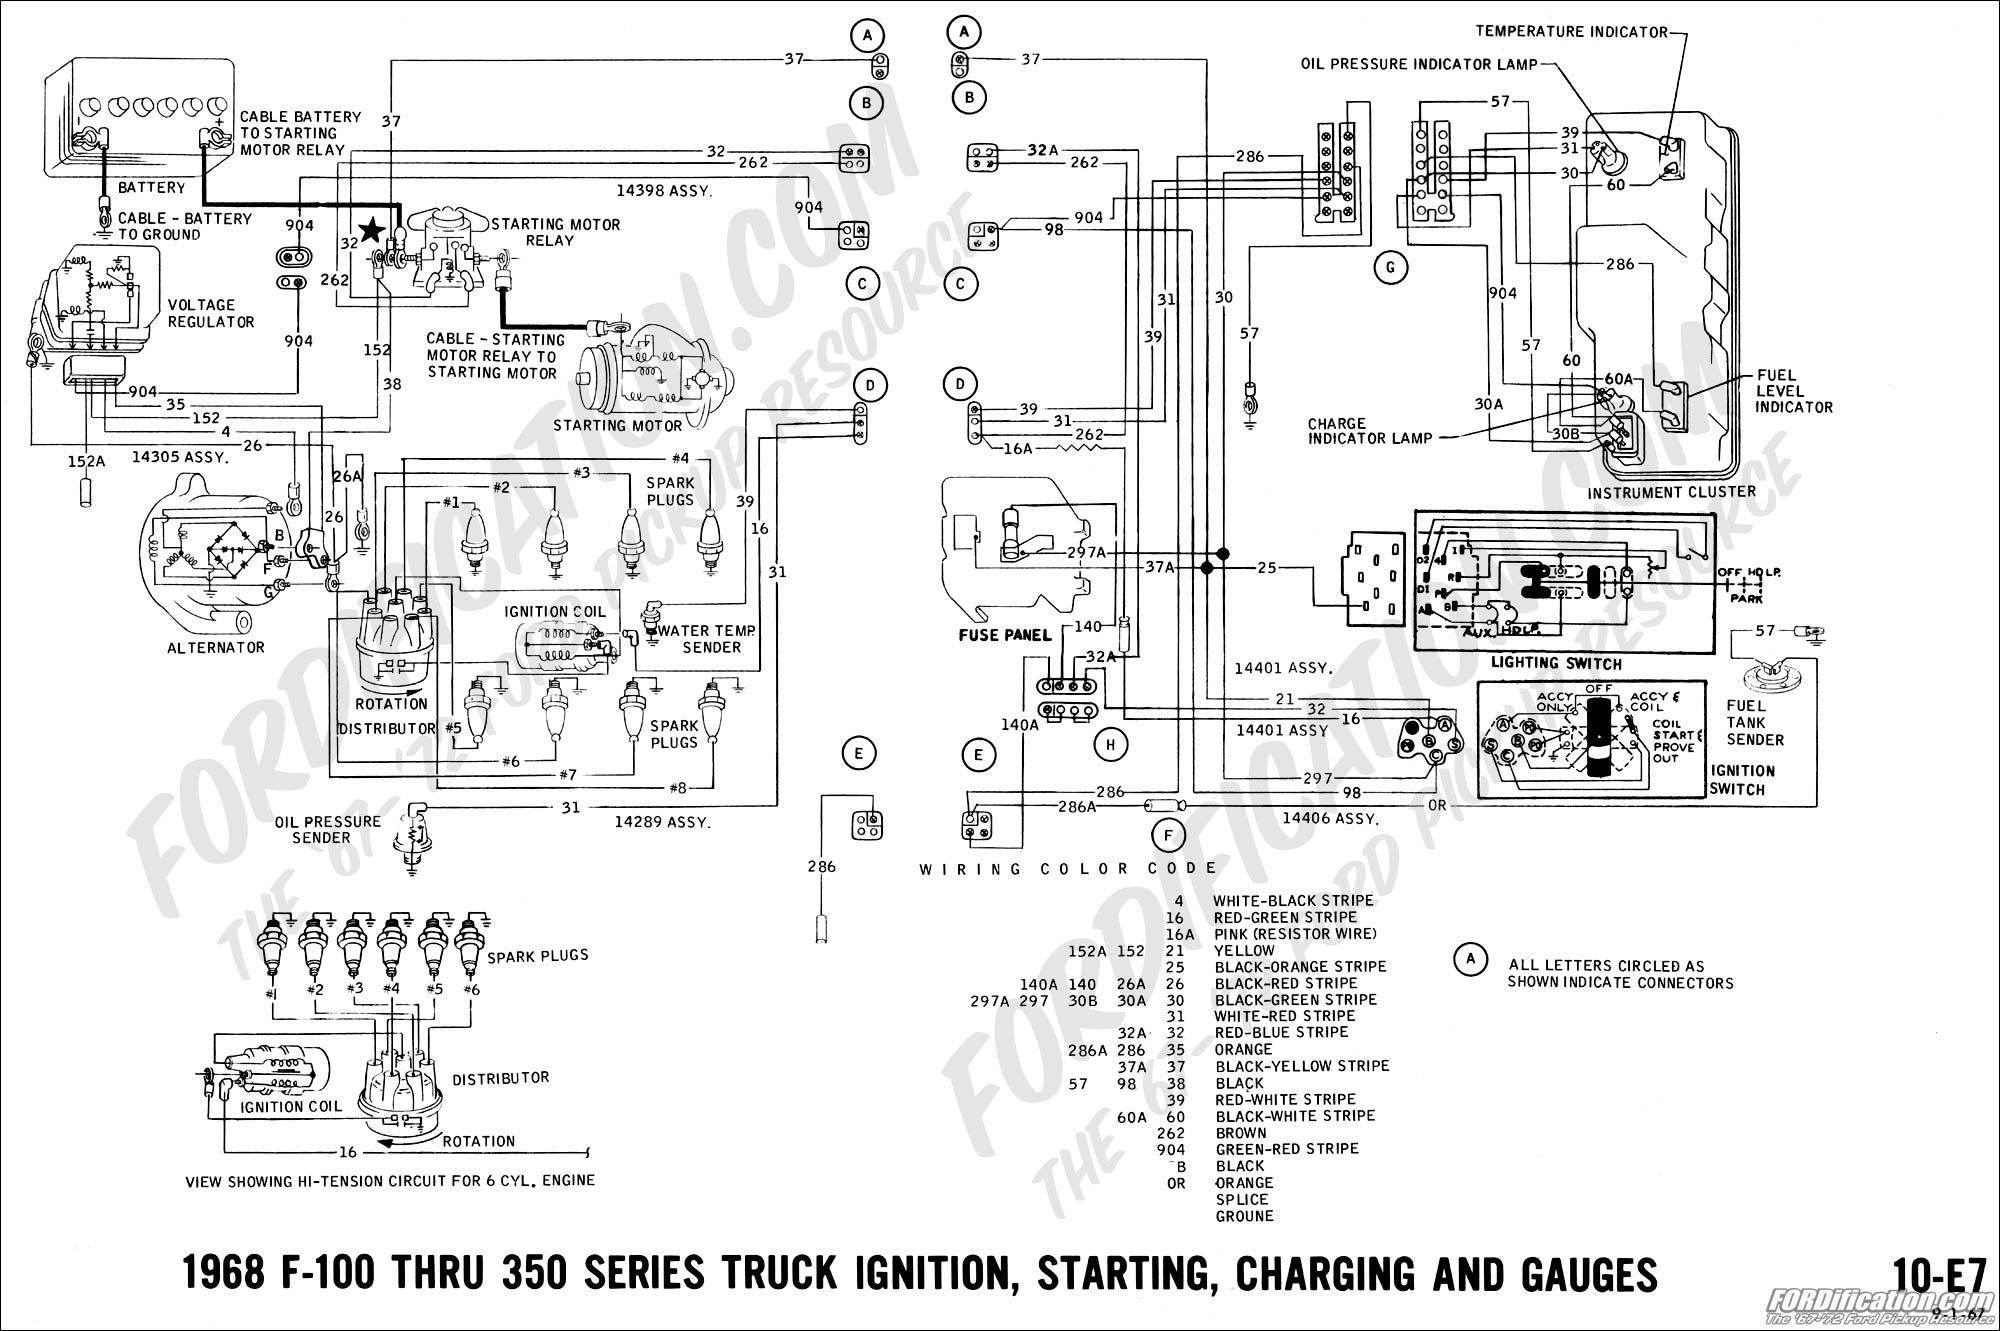 68 09 69 ford ignition pigtail wiring schematic wiring diagram data